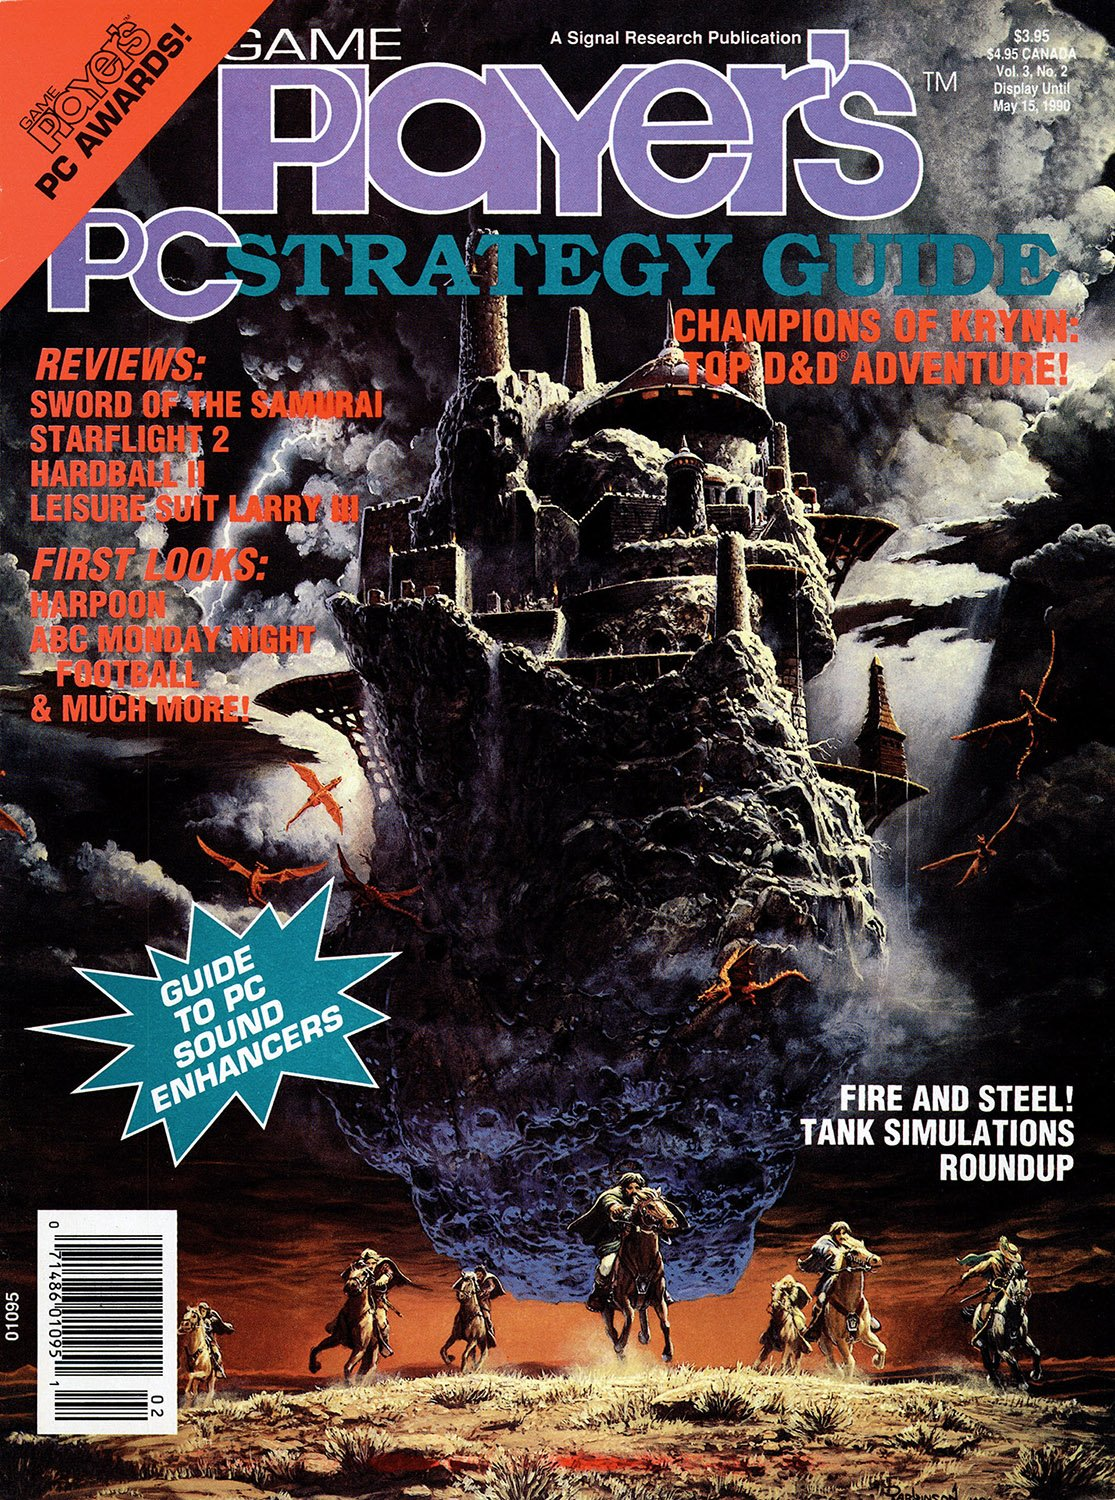 Game Player's PC Strategy Guide Volume 3 Number 2 (March/April 1990)